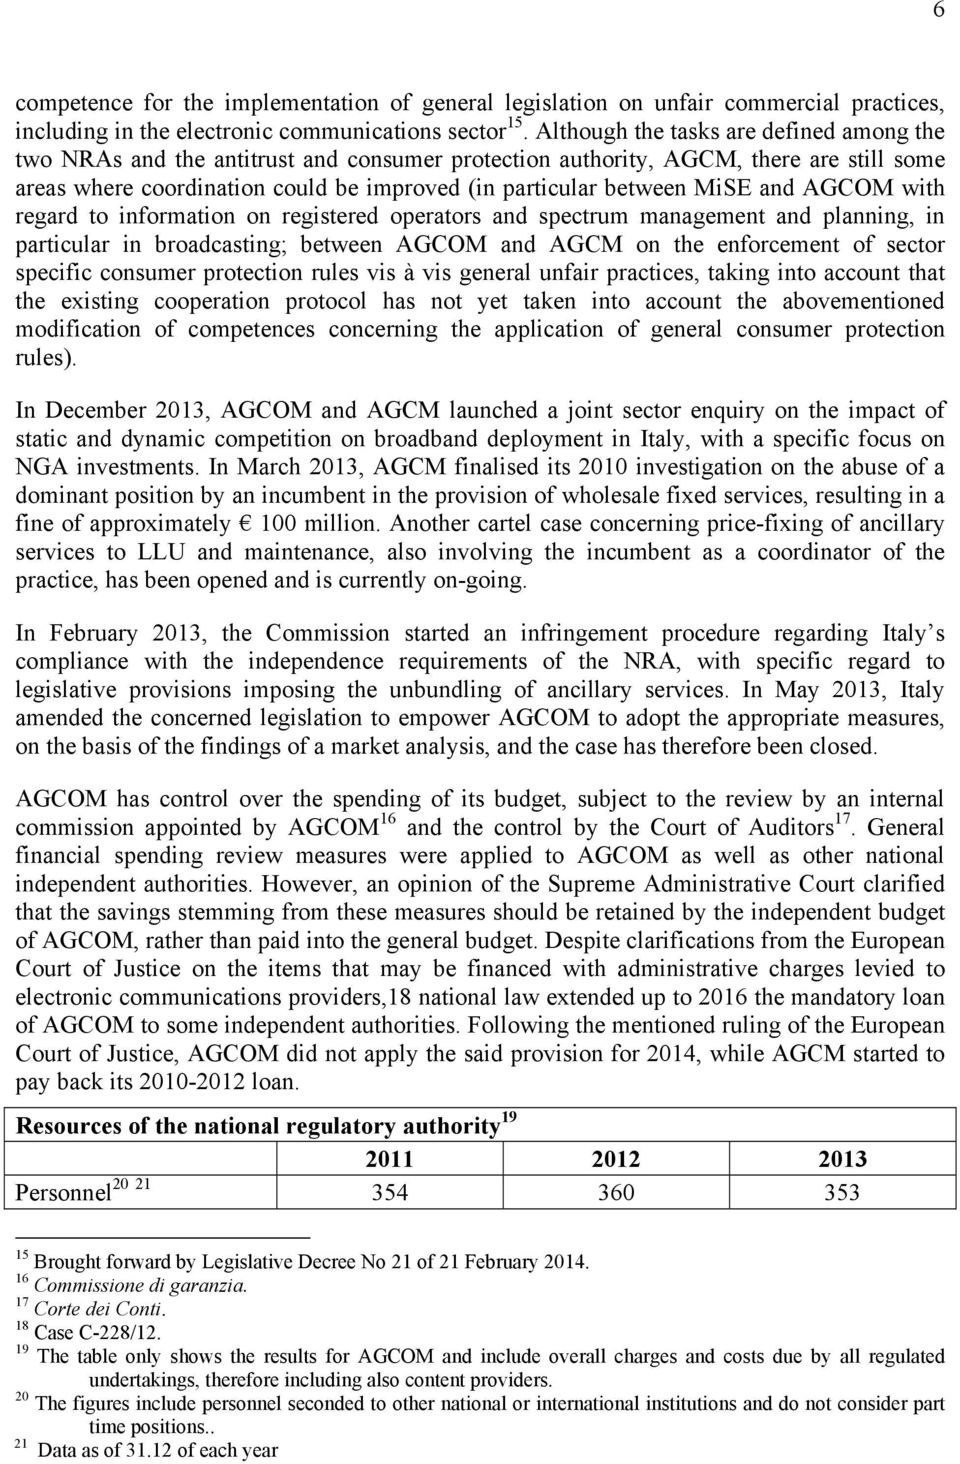 MiSE and AGCOM with regard to information on registered operators and spectrum management and planning, in particular in broadcasting; between AGCOM and AGCM on the enforcement of sector specific